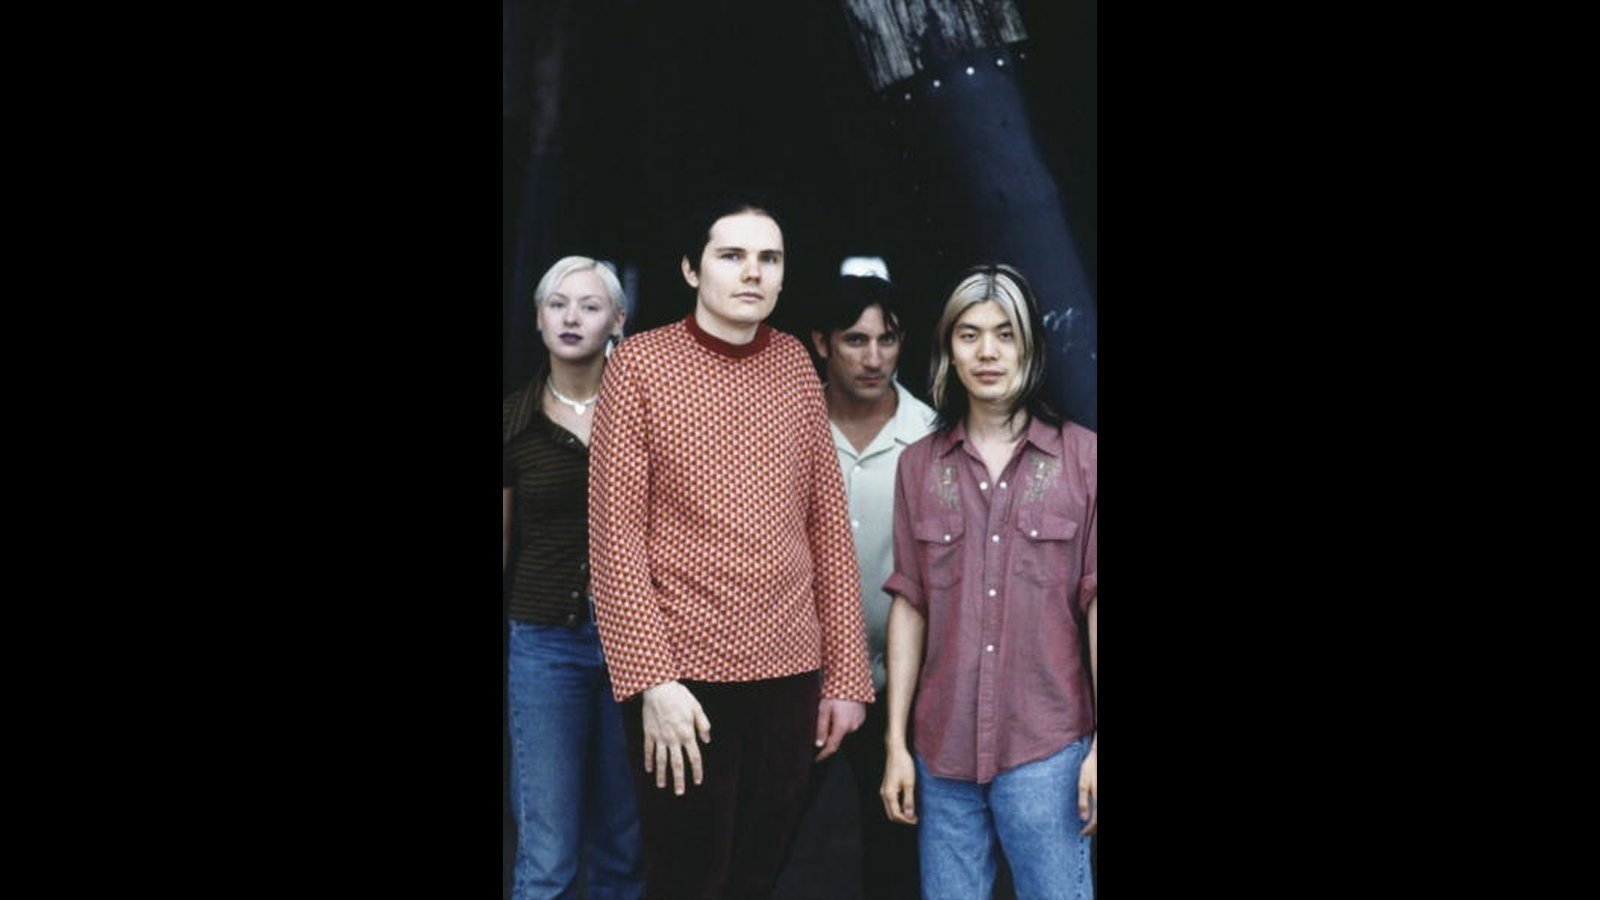 """Smashing Pumpkins haven't officially announced a reunion yet, but they are already explaining the absence of one of the group's members. In a statement provided to CNN, the popular alternative rock band said, """"In reuniting The Smashing Pumpkins, the..."""